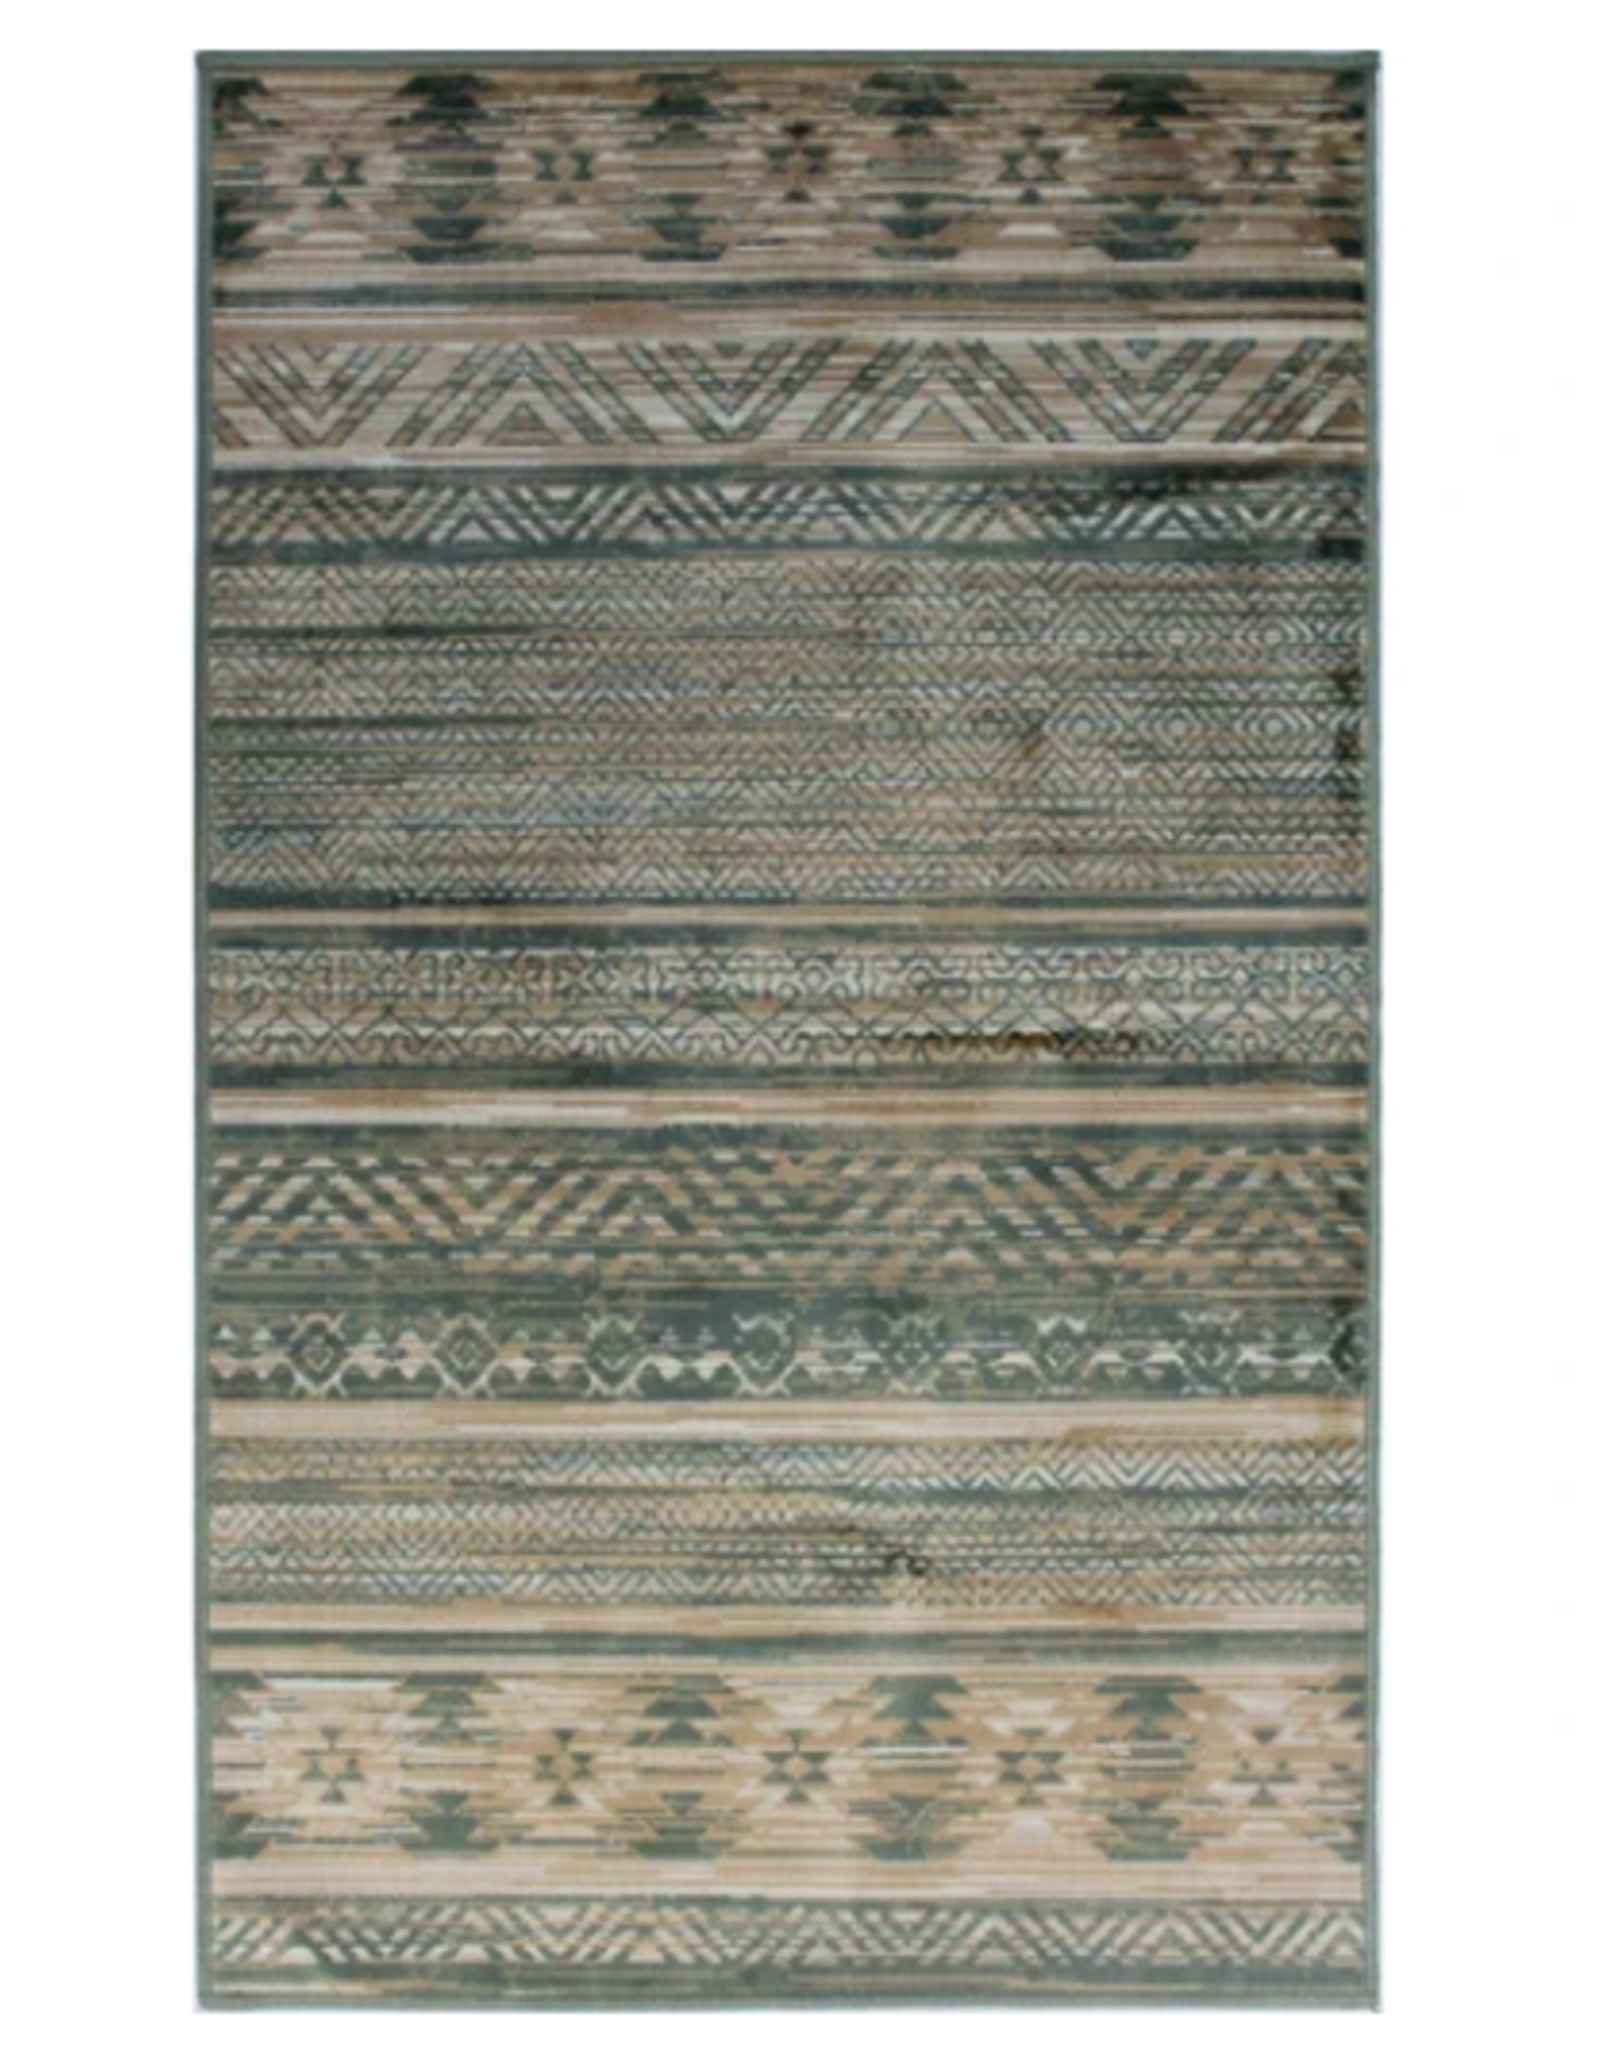 Rugs Avocado Artificial Silk 2'4 x 3'7 Ariana Green